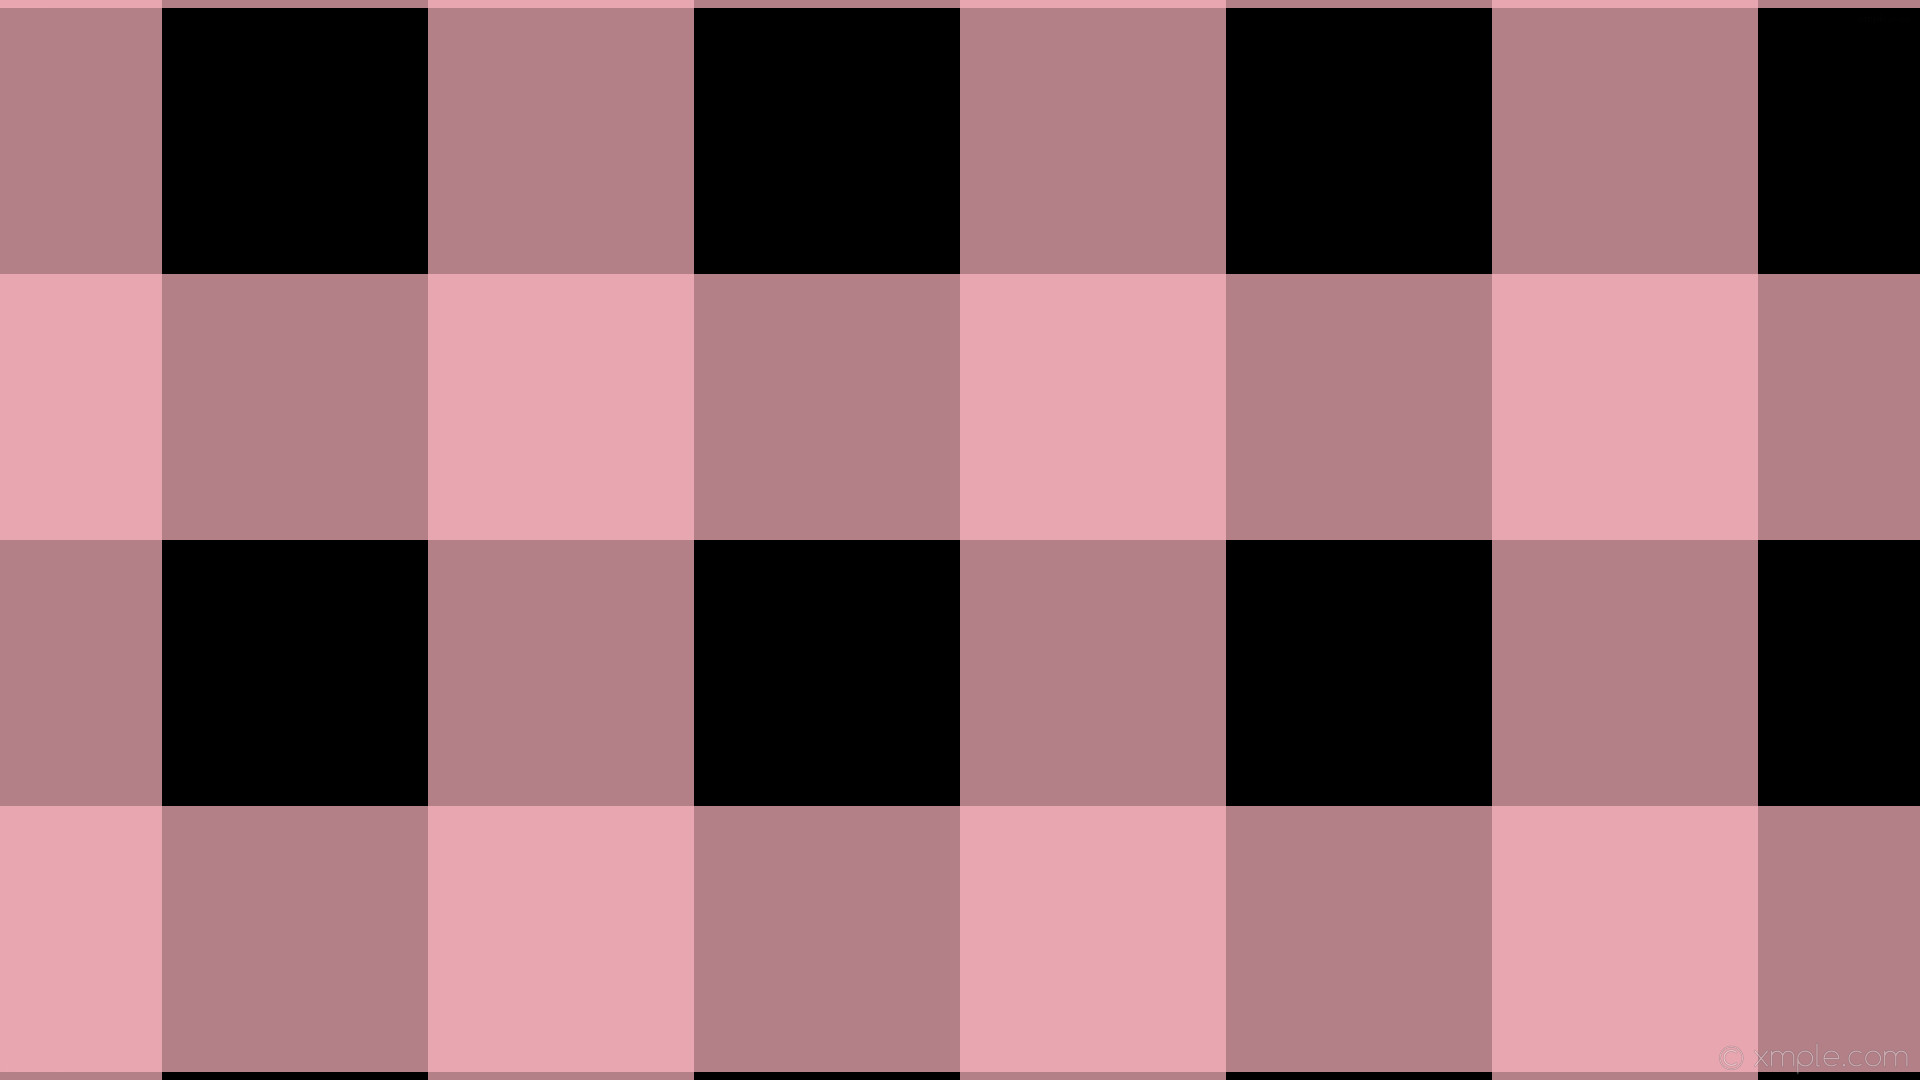 wallpaper striped black pink gingham checker light pink #000000 #ffb6c1 90°  266px